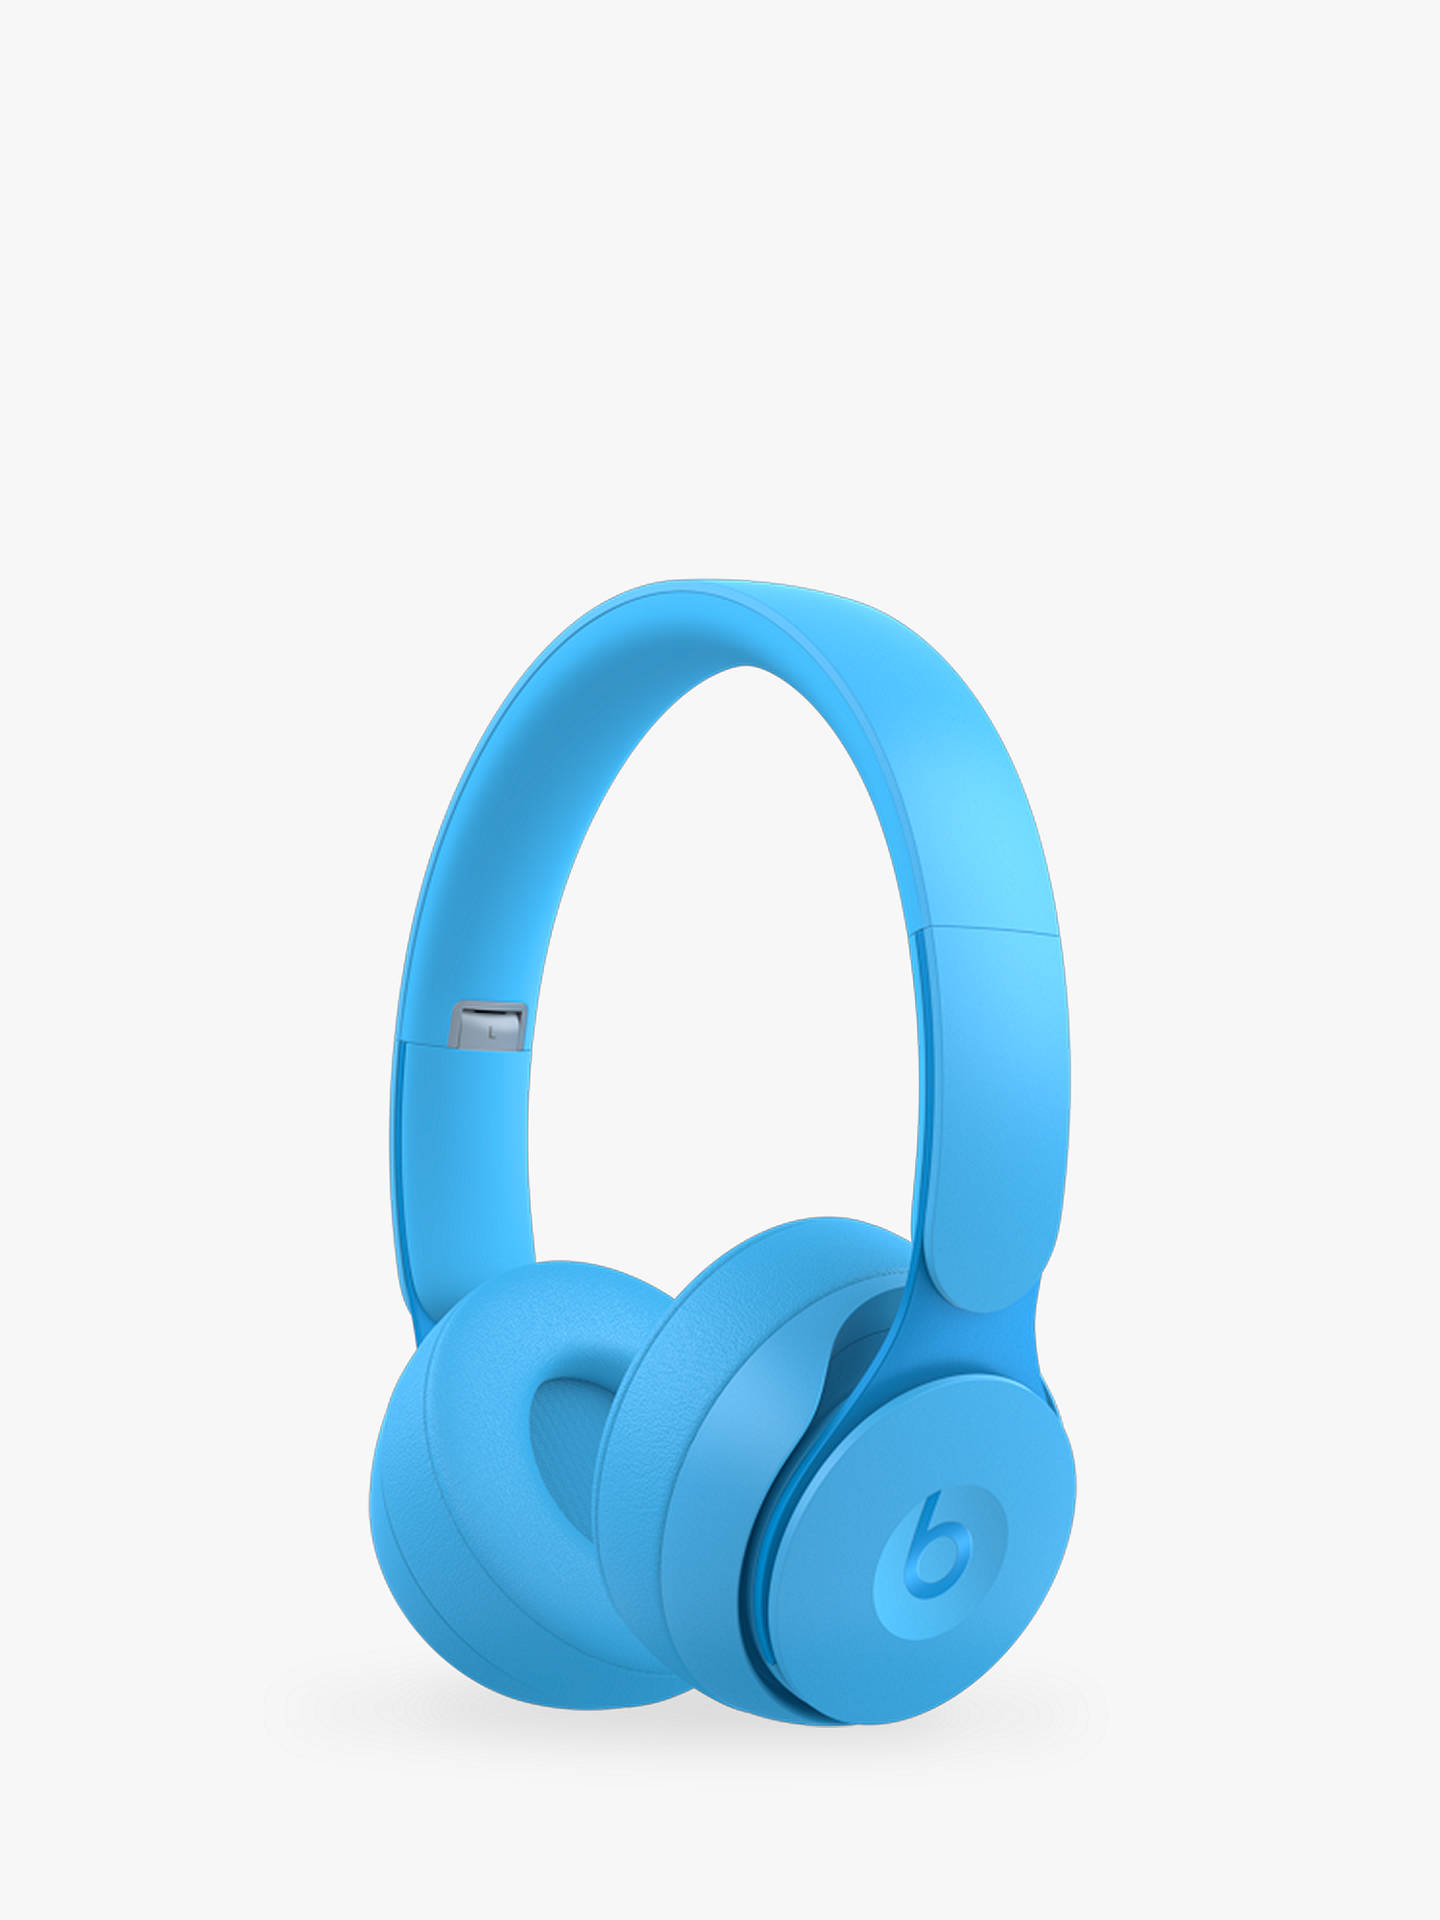 Buy Beats Solo Pro Wireless Bluetooth On-Ear Headphones with Active Noise Cancelling & Mic/Remote, Light Blue Online at johnlewis.com